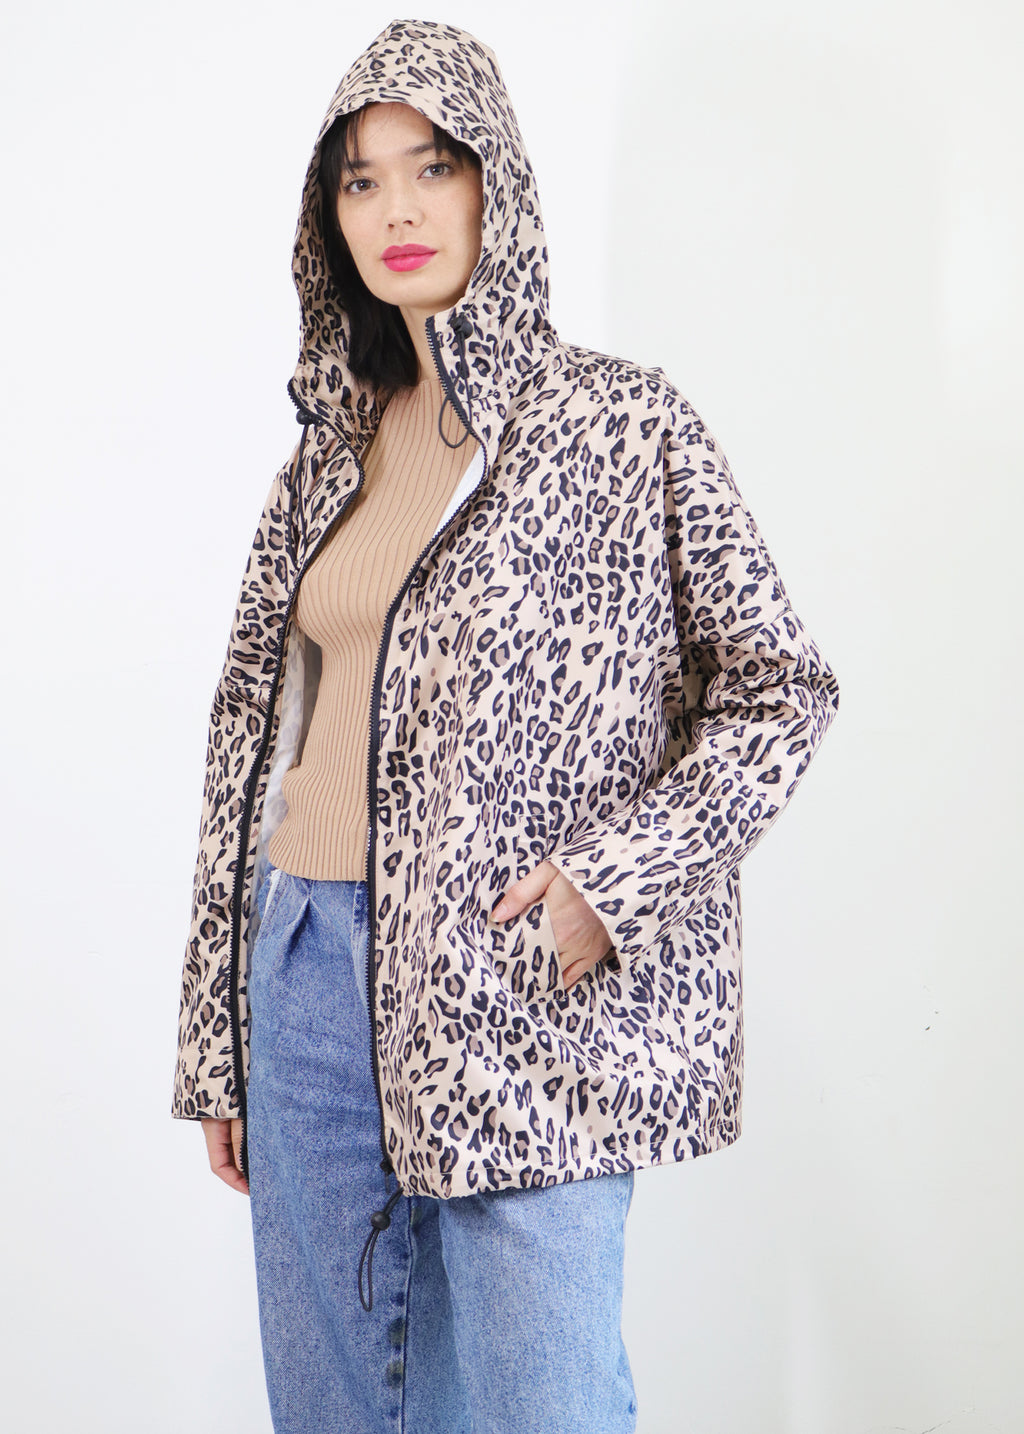 Exlusive Graphic Leopard Print Waterproof Lifestyle Raincoat